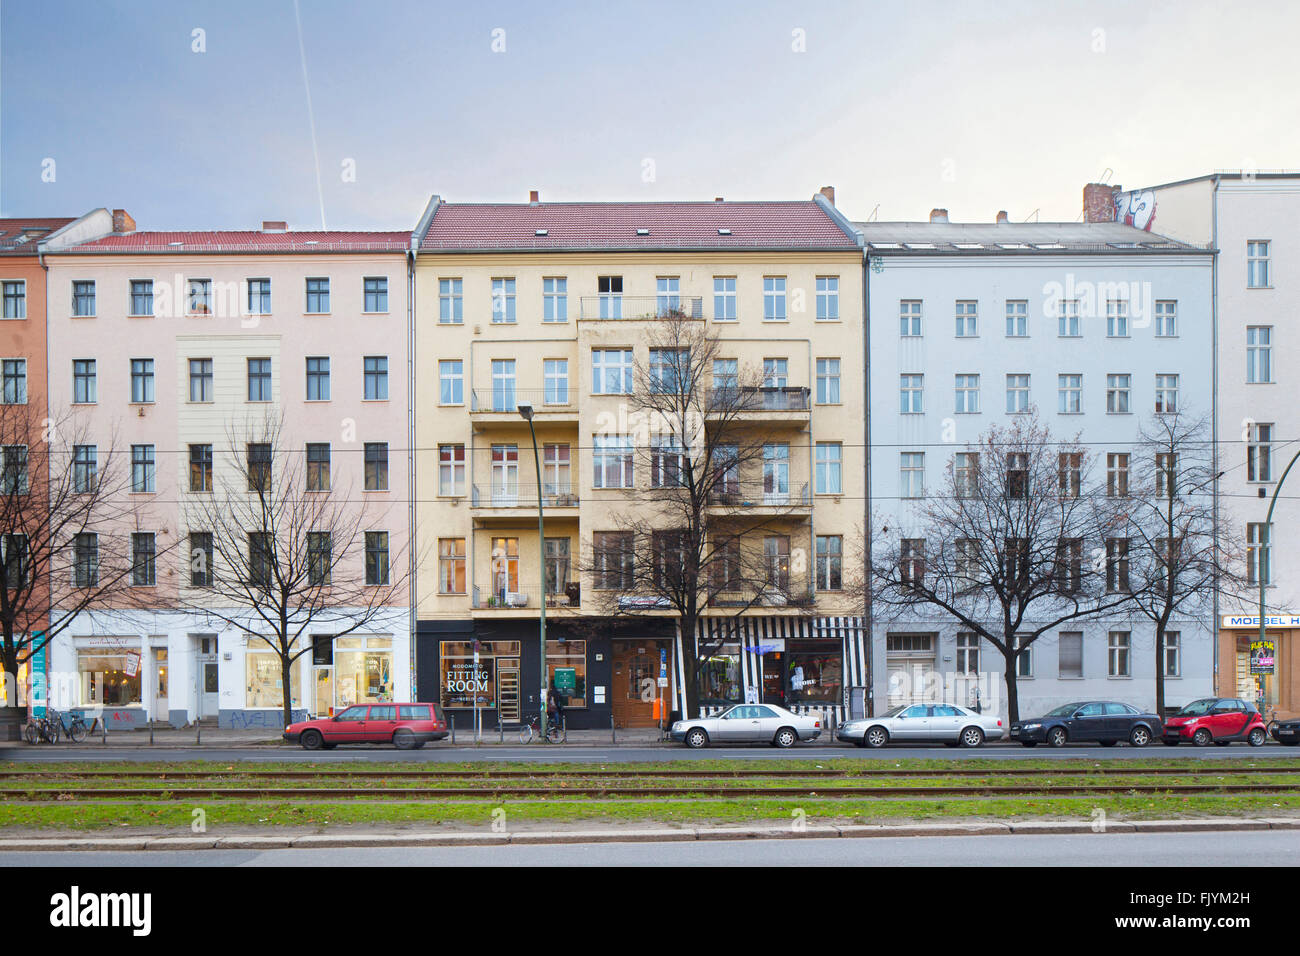 town houses historic houses terraced rental properties in berlin stock photo royalty free. Black Bedroom Furniture Sets. Home Design Ideas